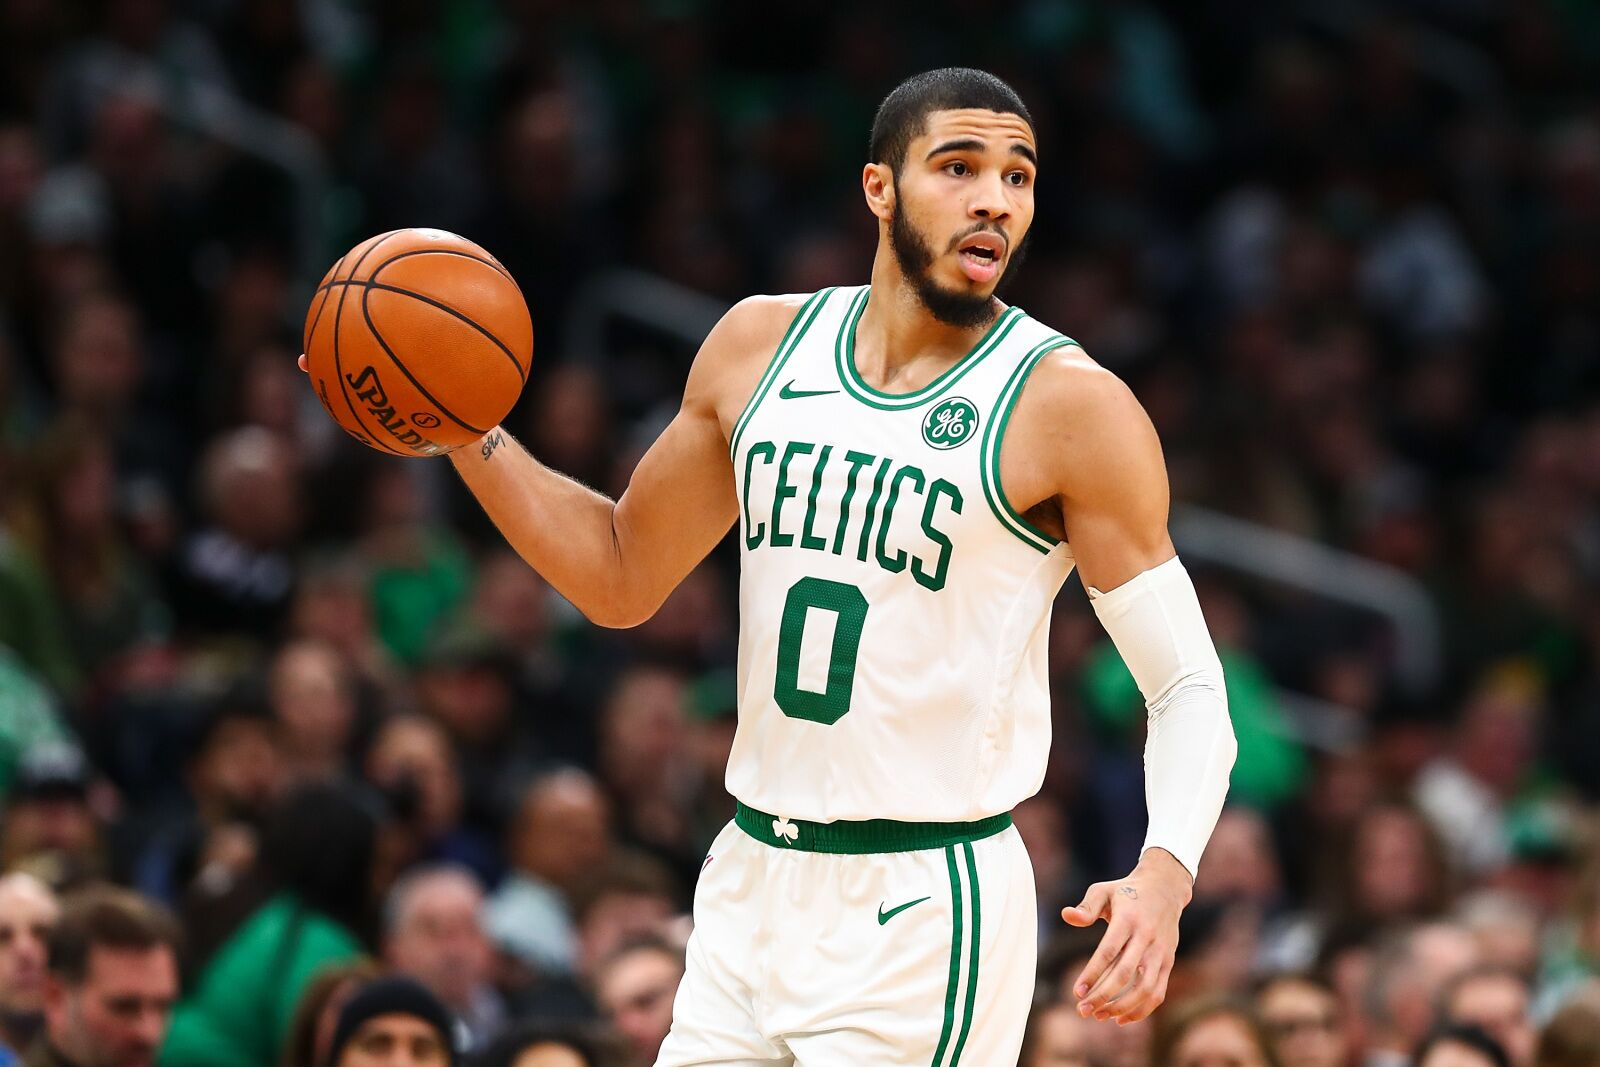 Making the case for Jayson Tatum's All-Star and All-NBA candidacy